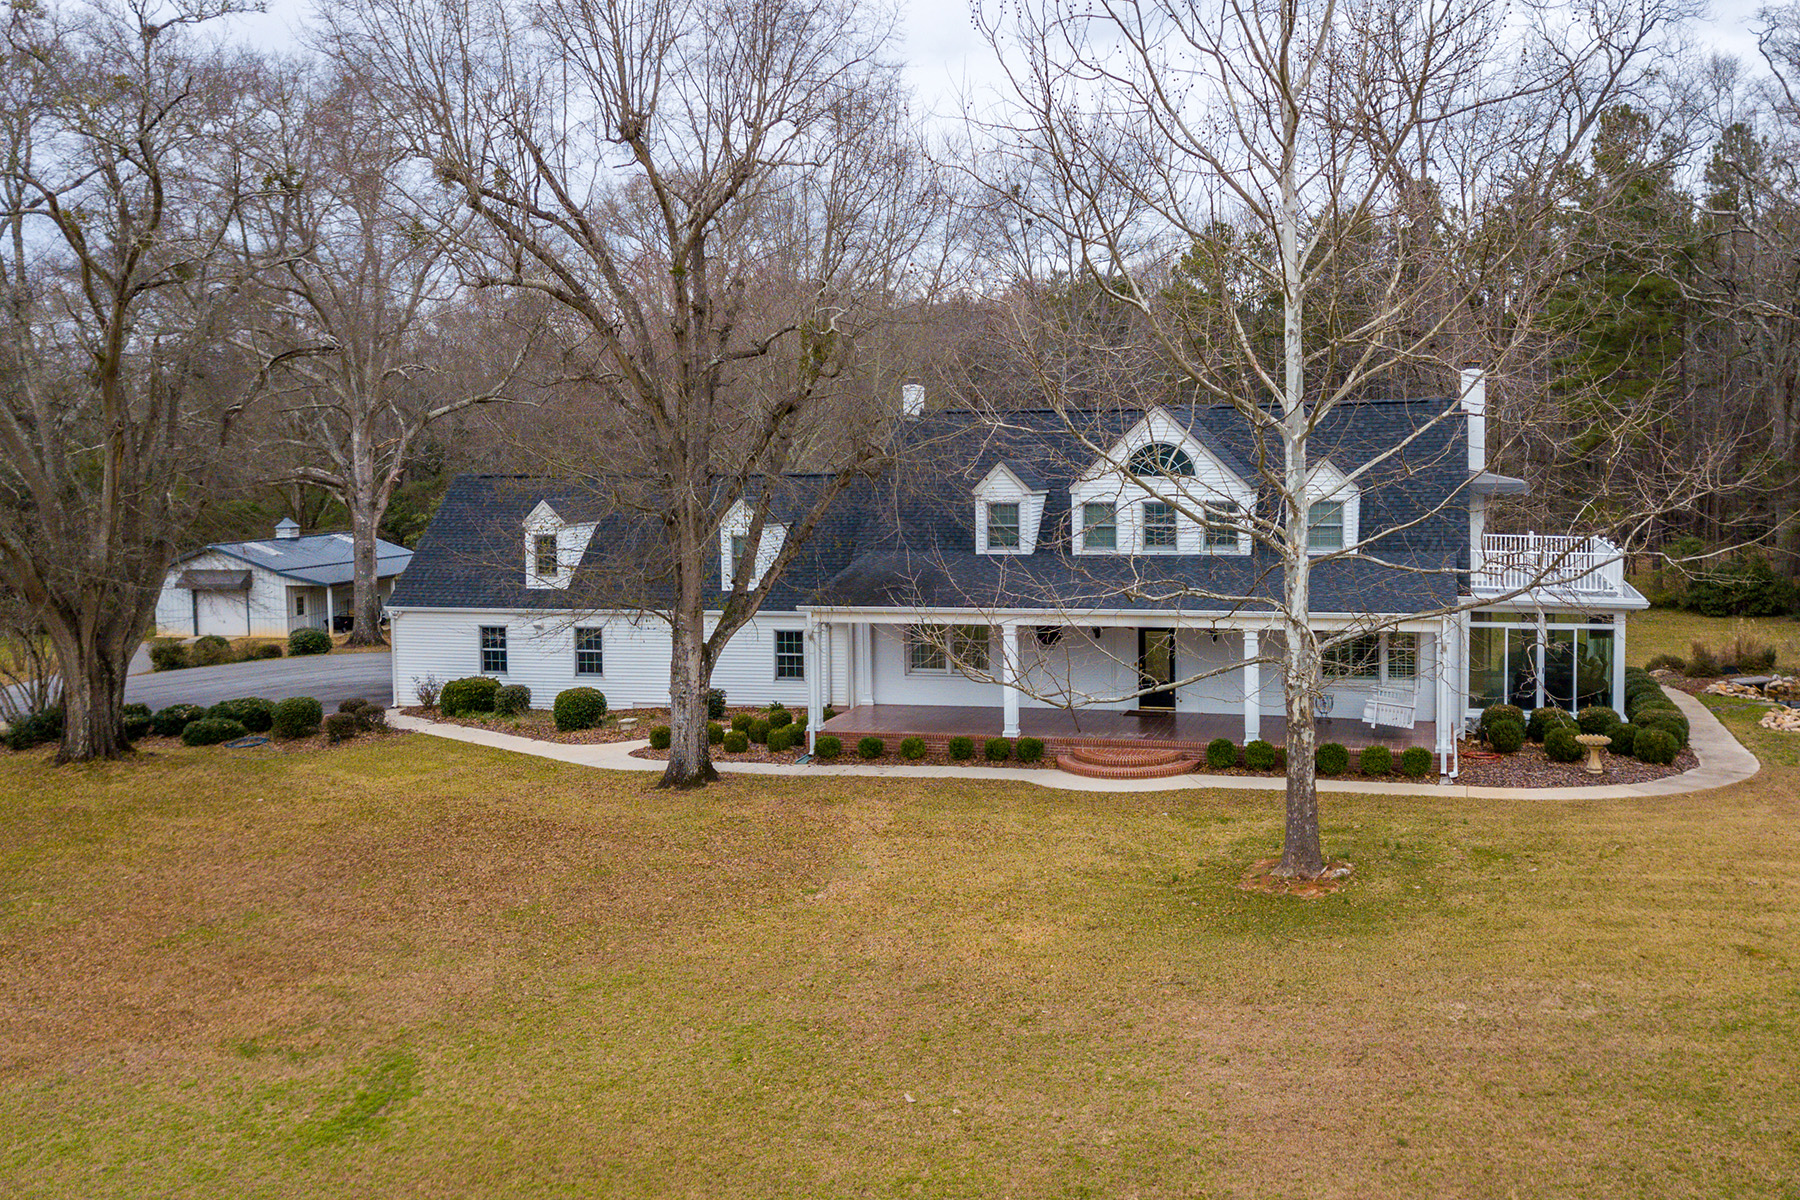 Single Family Homes for Sale at Oozing with Charm, This Inviting Southern-Style Home Rests On 5.44+/- Acres 345 West Johnston Street Forsyth, Georgia 31029 United States